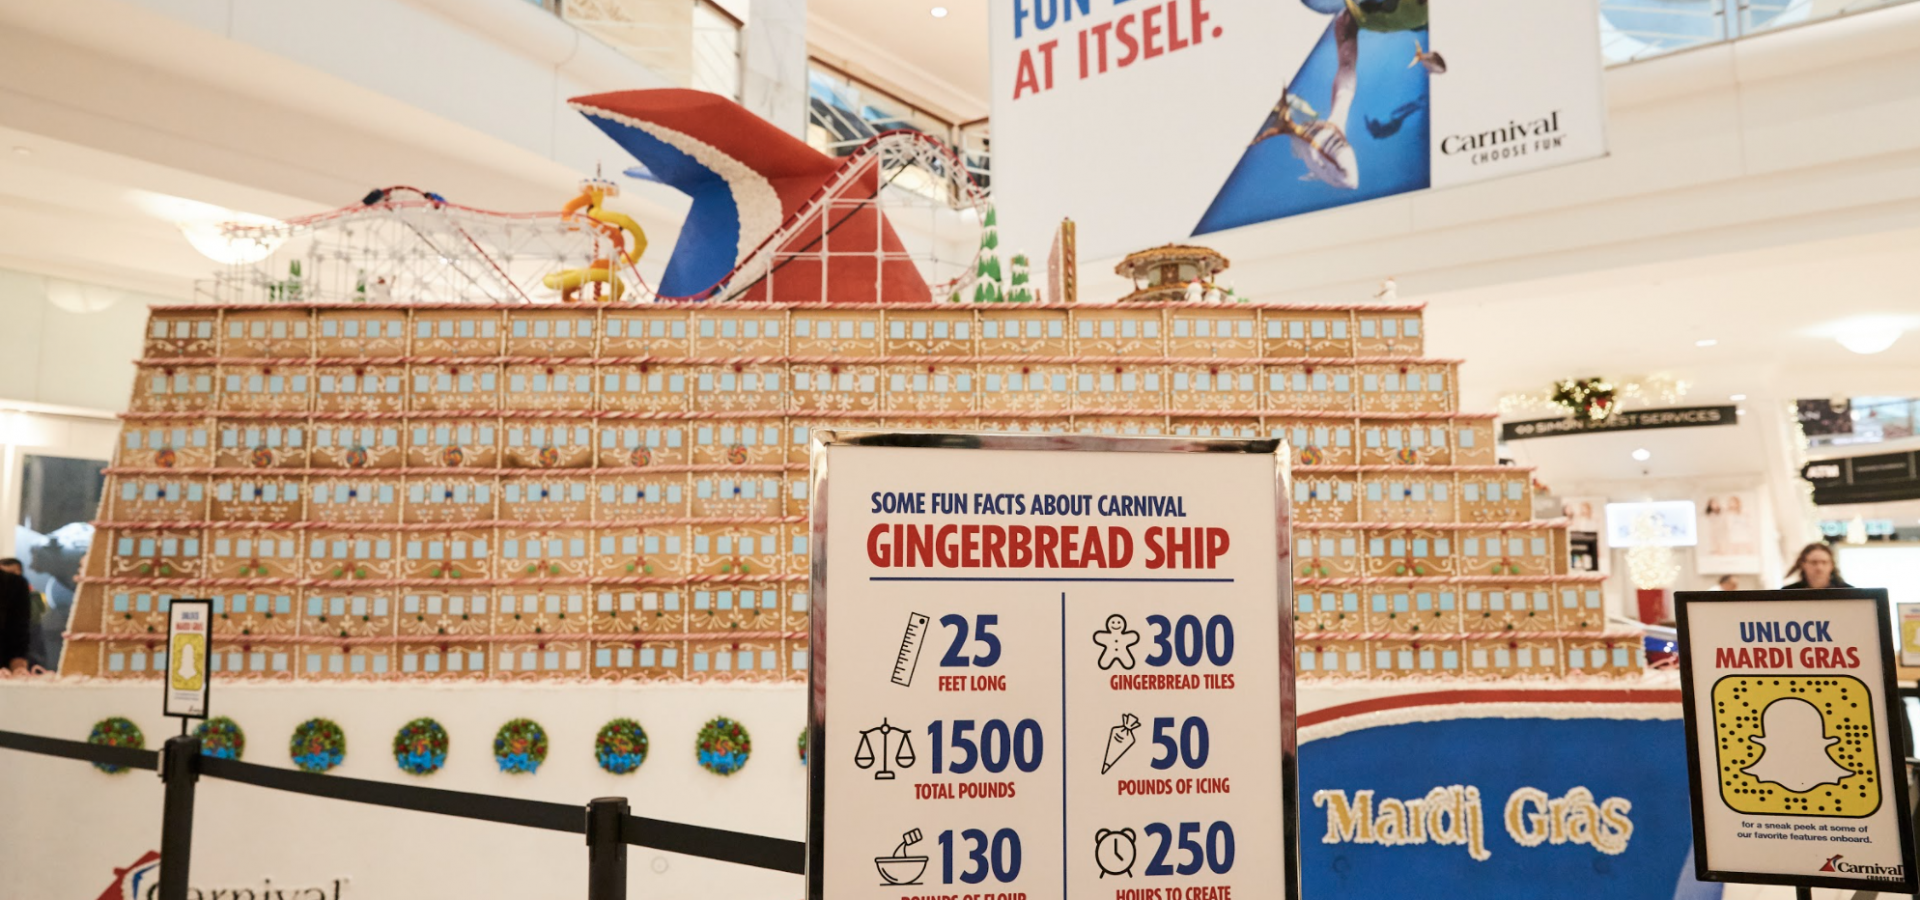 carnival-ginger-bread-ship_3-gdx-studios